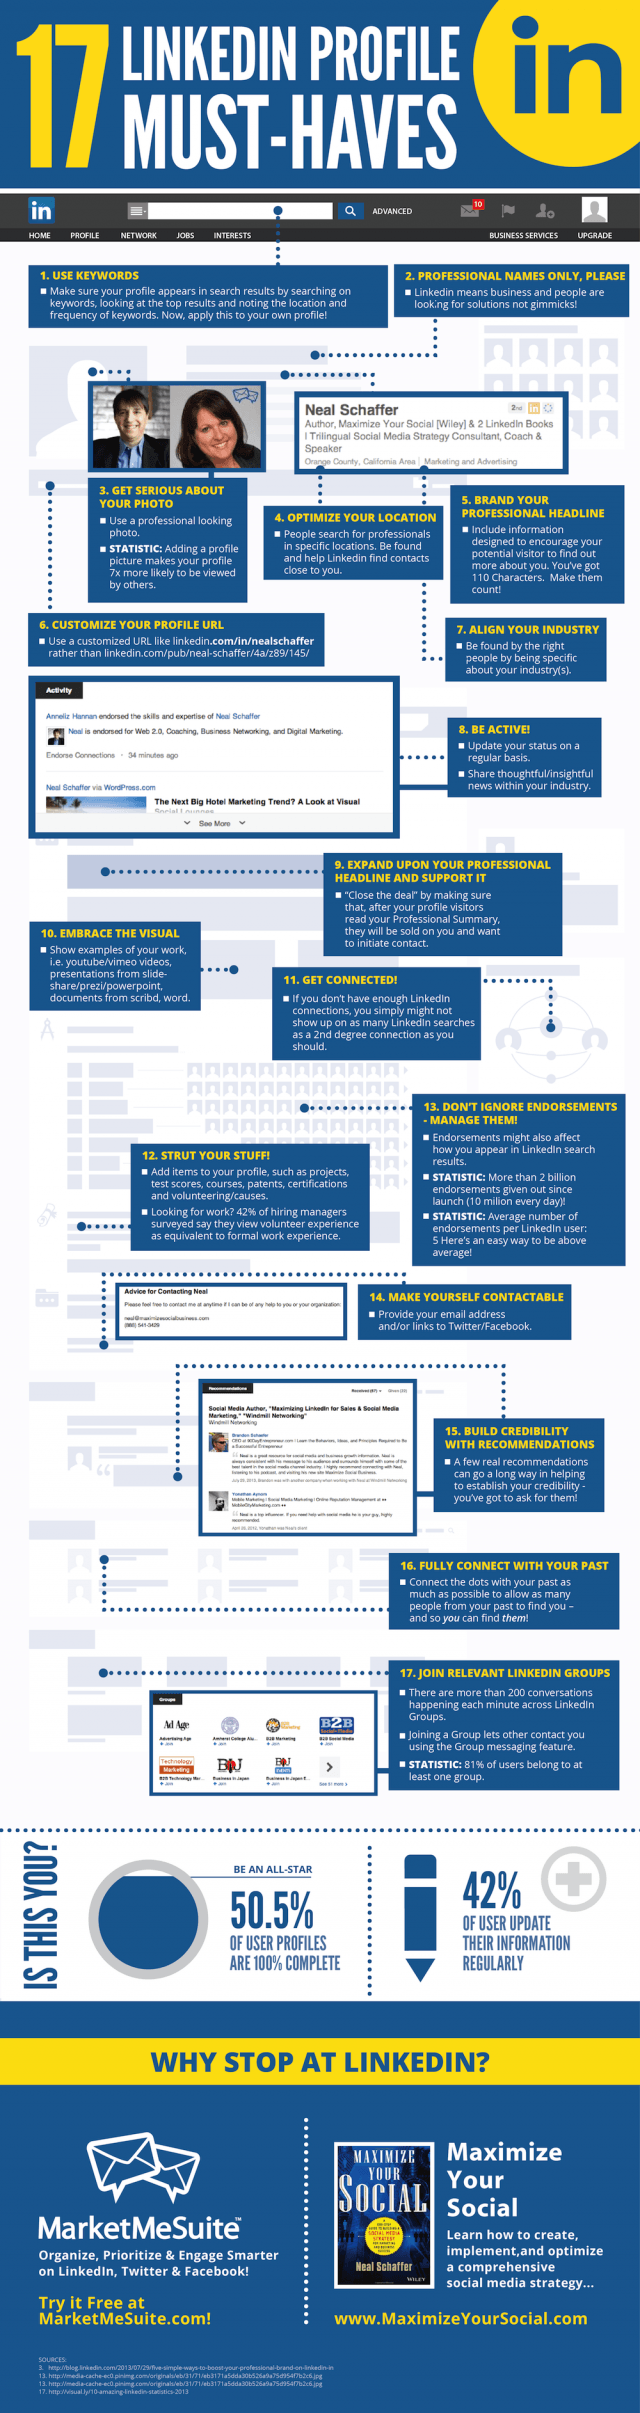 LinkedIn-Perfect-Profile-Tips-Summary-Infographic-Juntae-DeLane